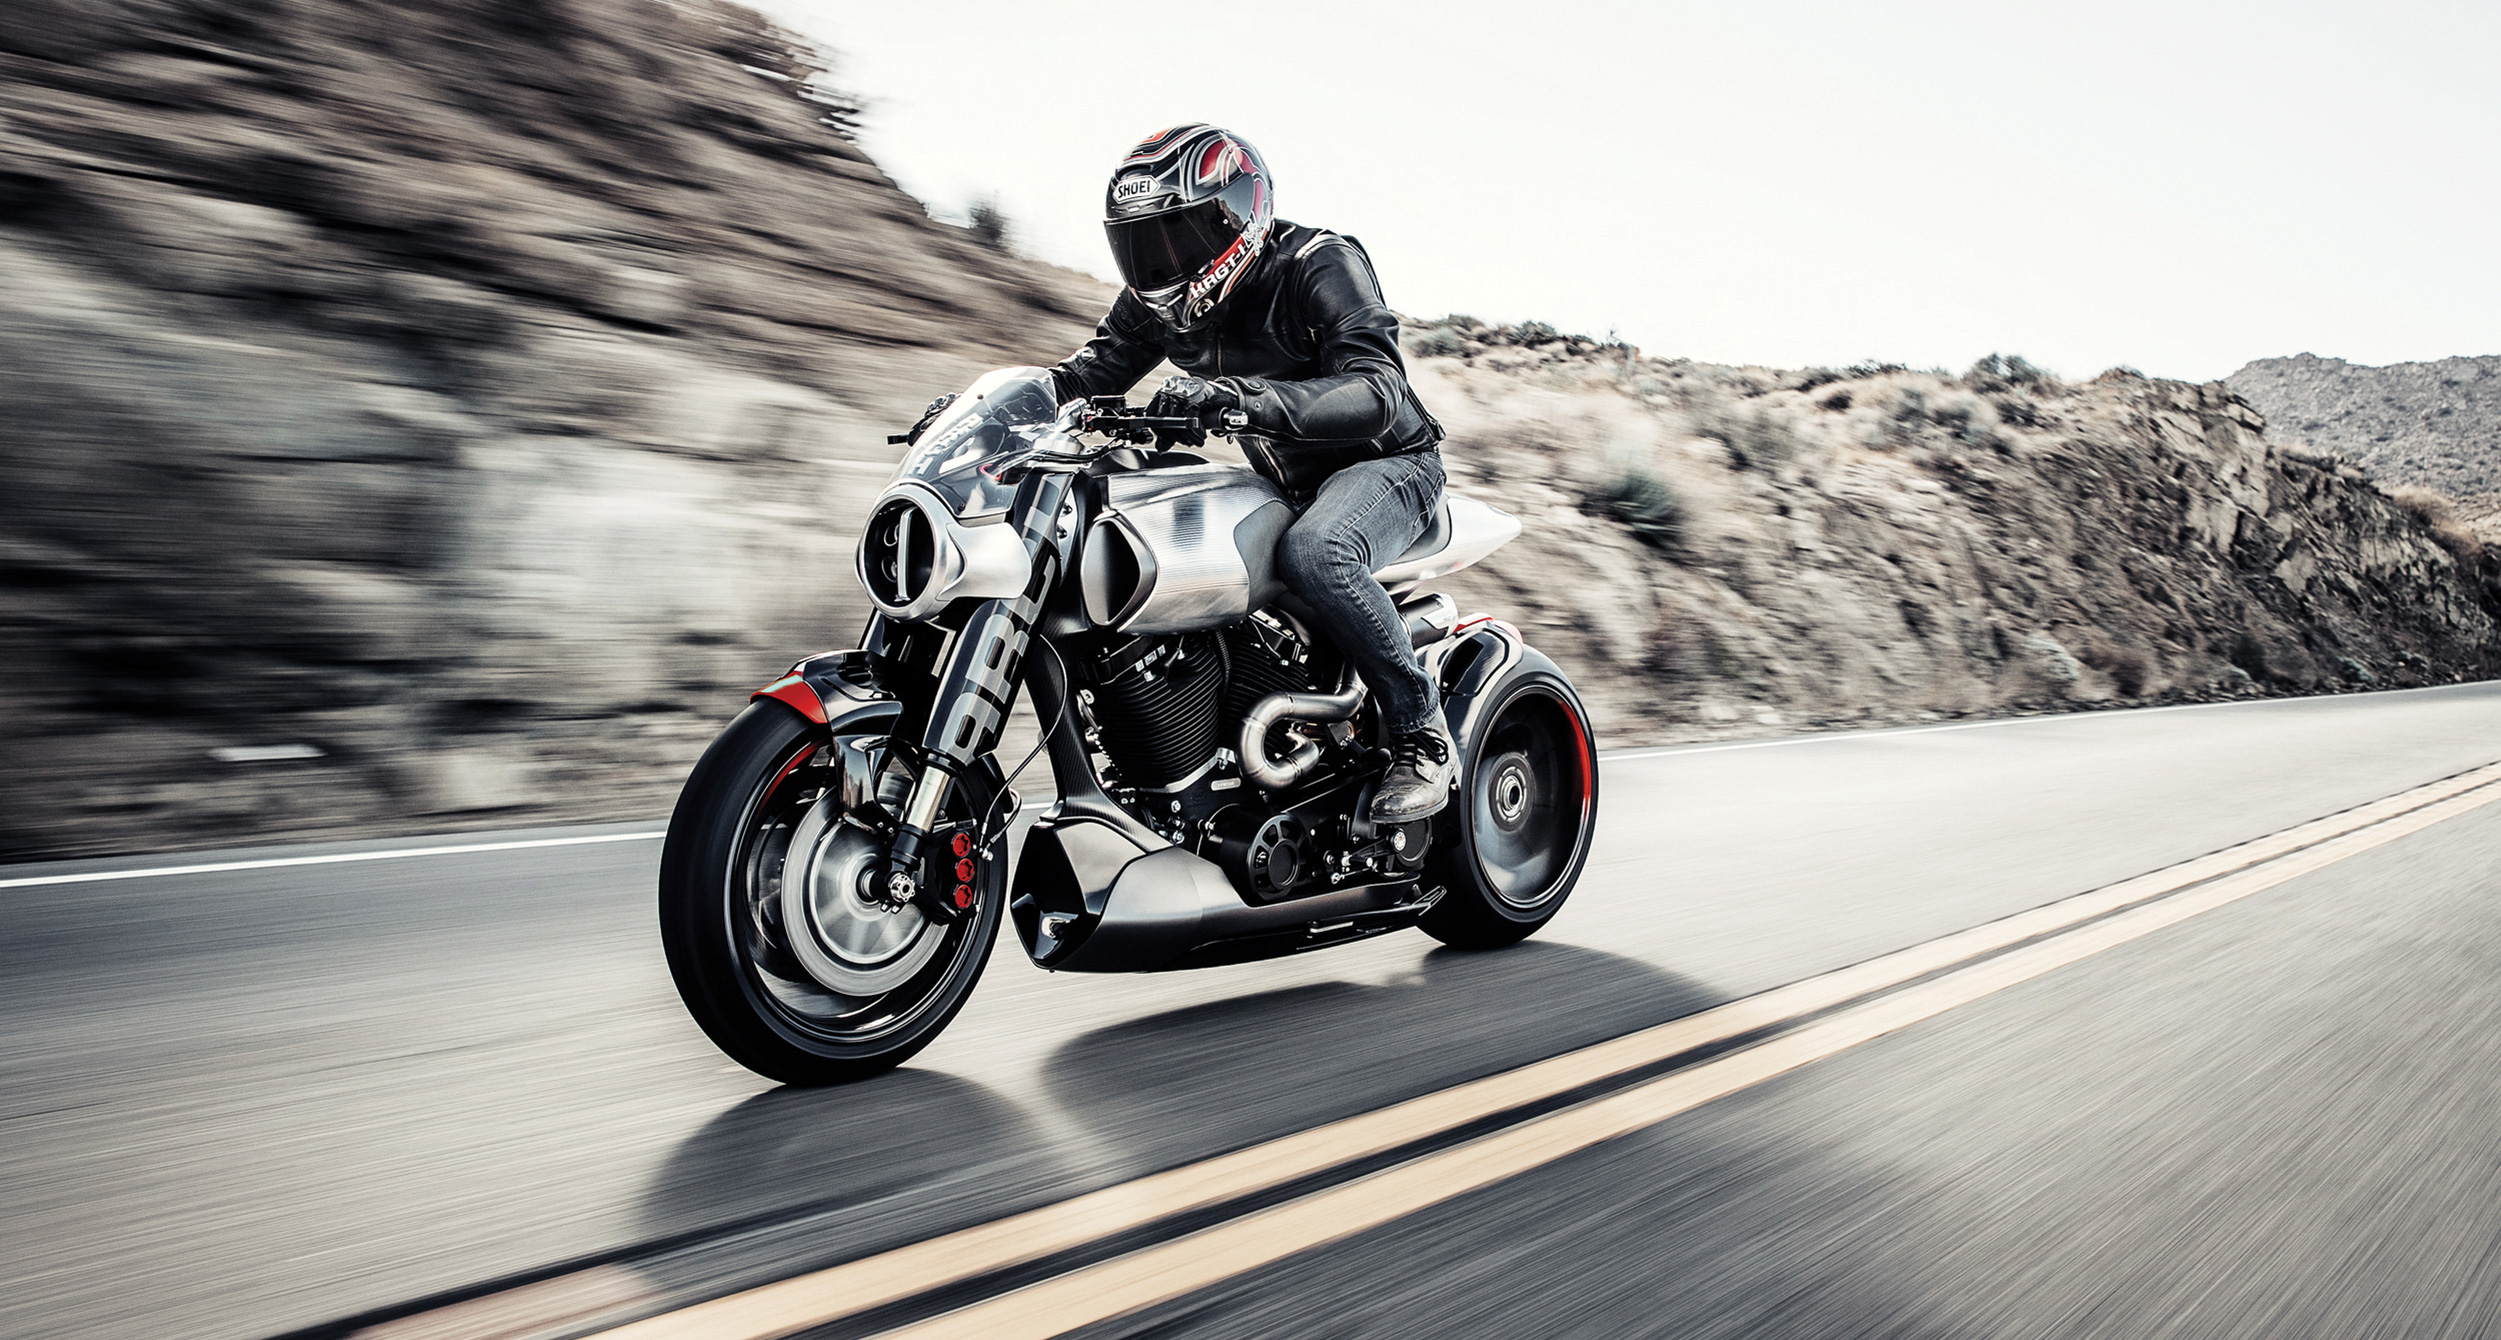 Keanu Reeves's Arch Motorcycle Company